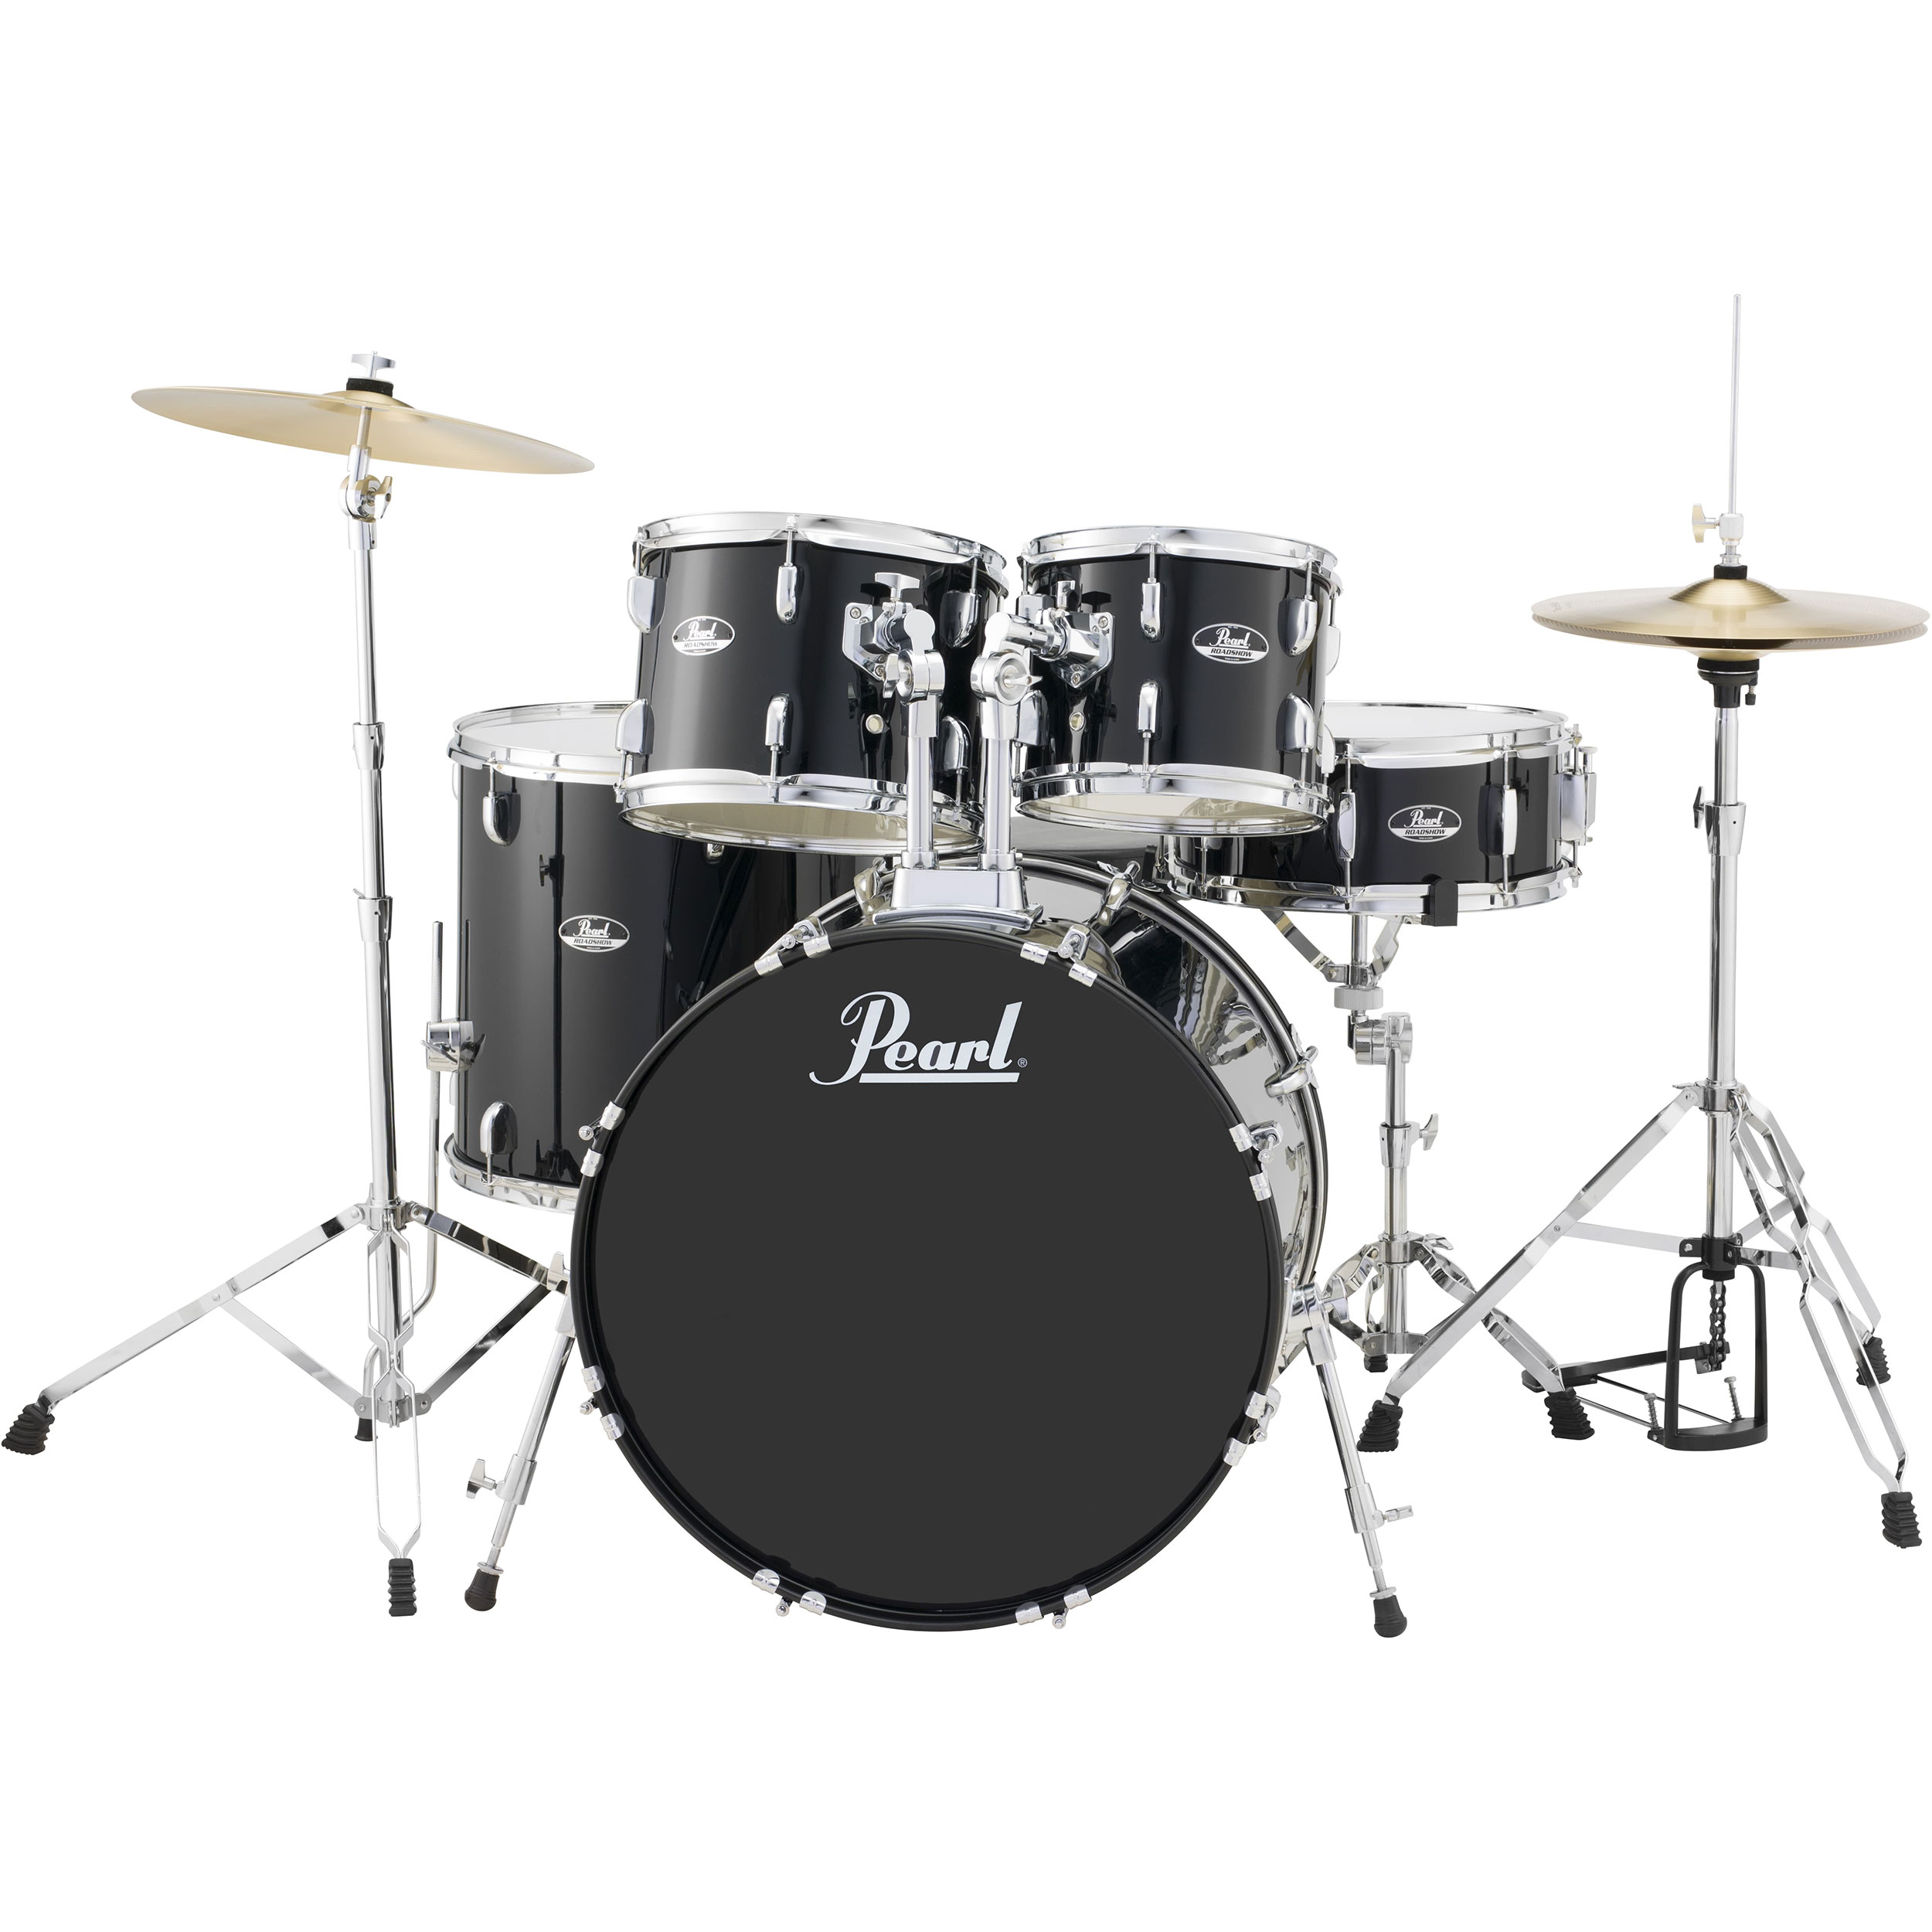 """Pearl Roadshow 5-Piece Drum Set with Hardware and Cymbals (20"""" Bass, 10/12/14"""" Toms, 14"""" Snare) in Jet Black"""